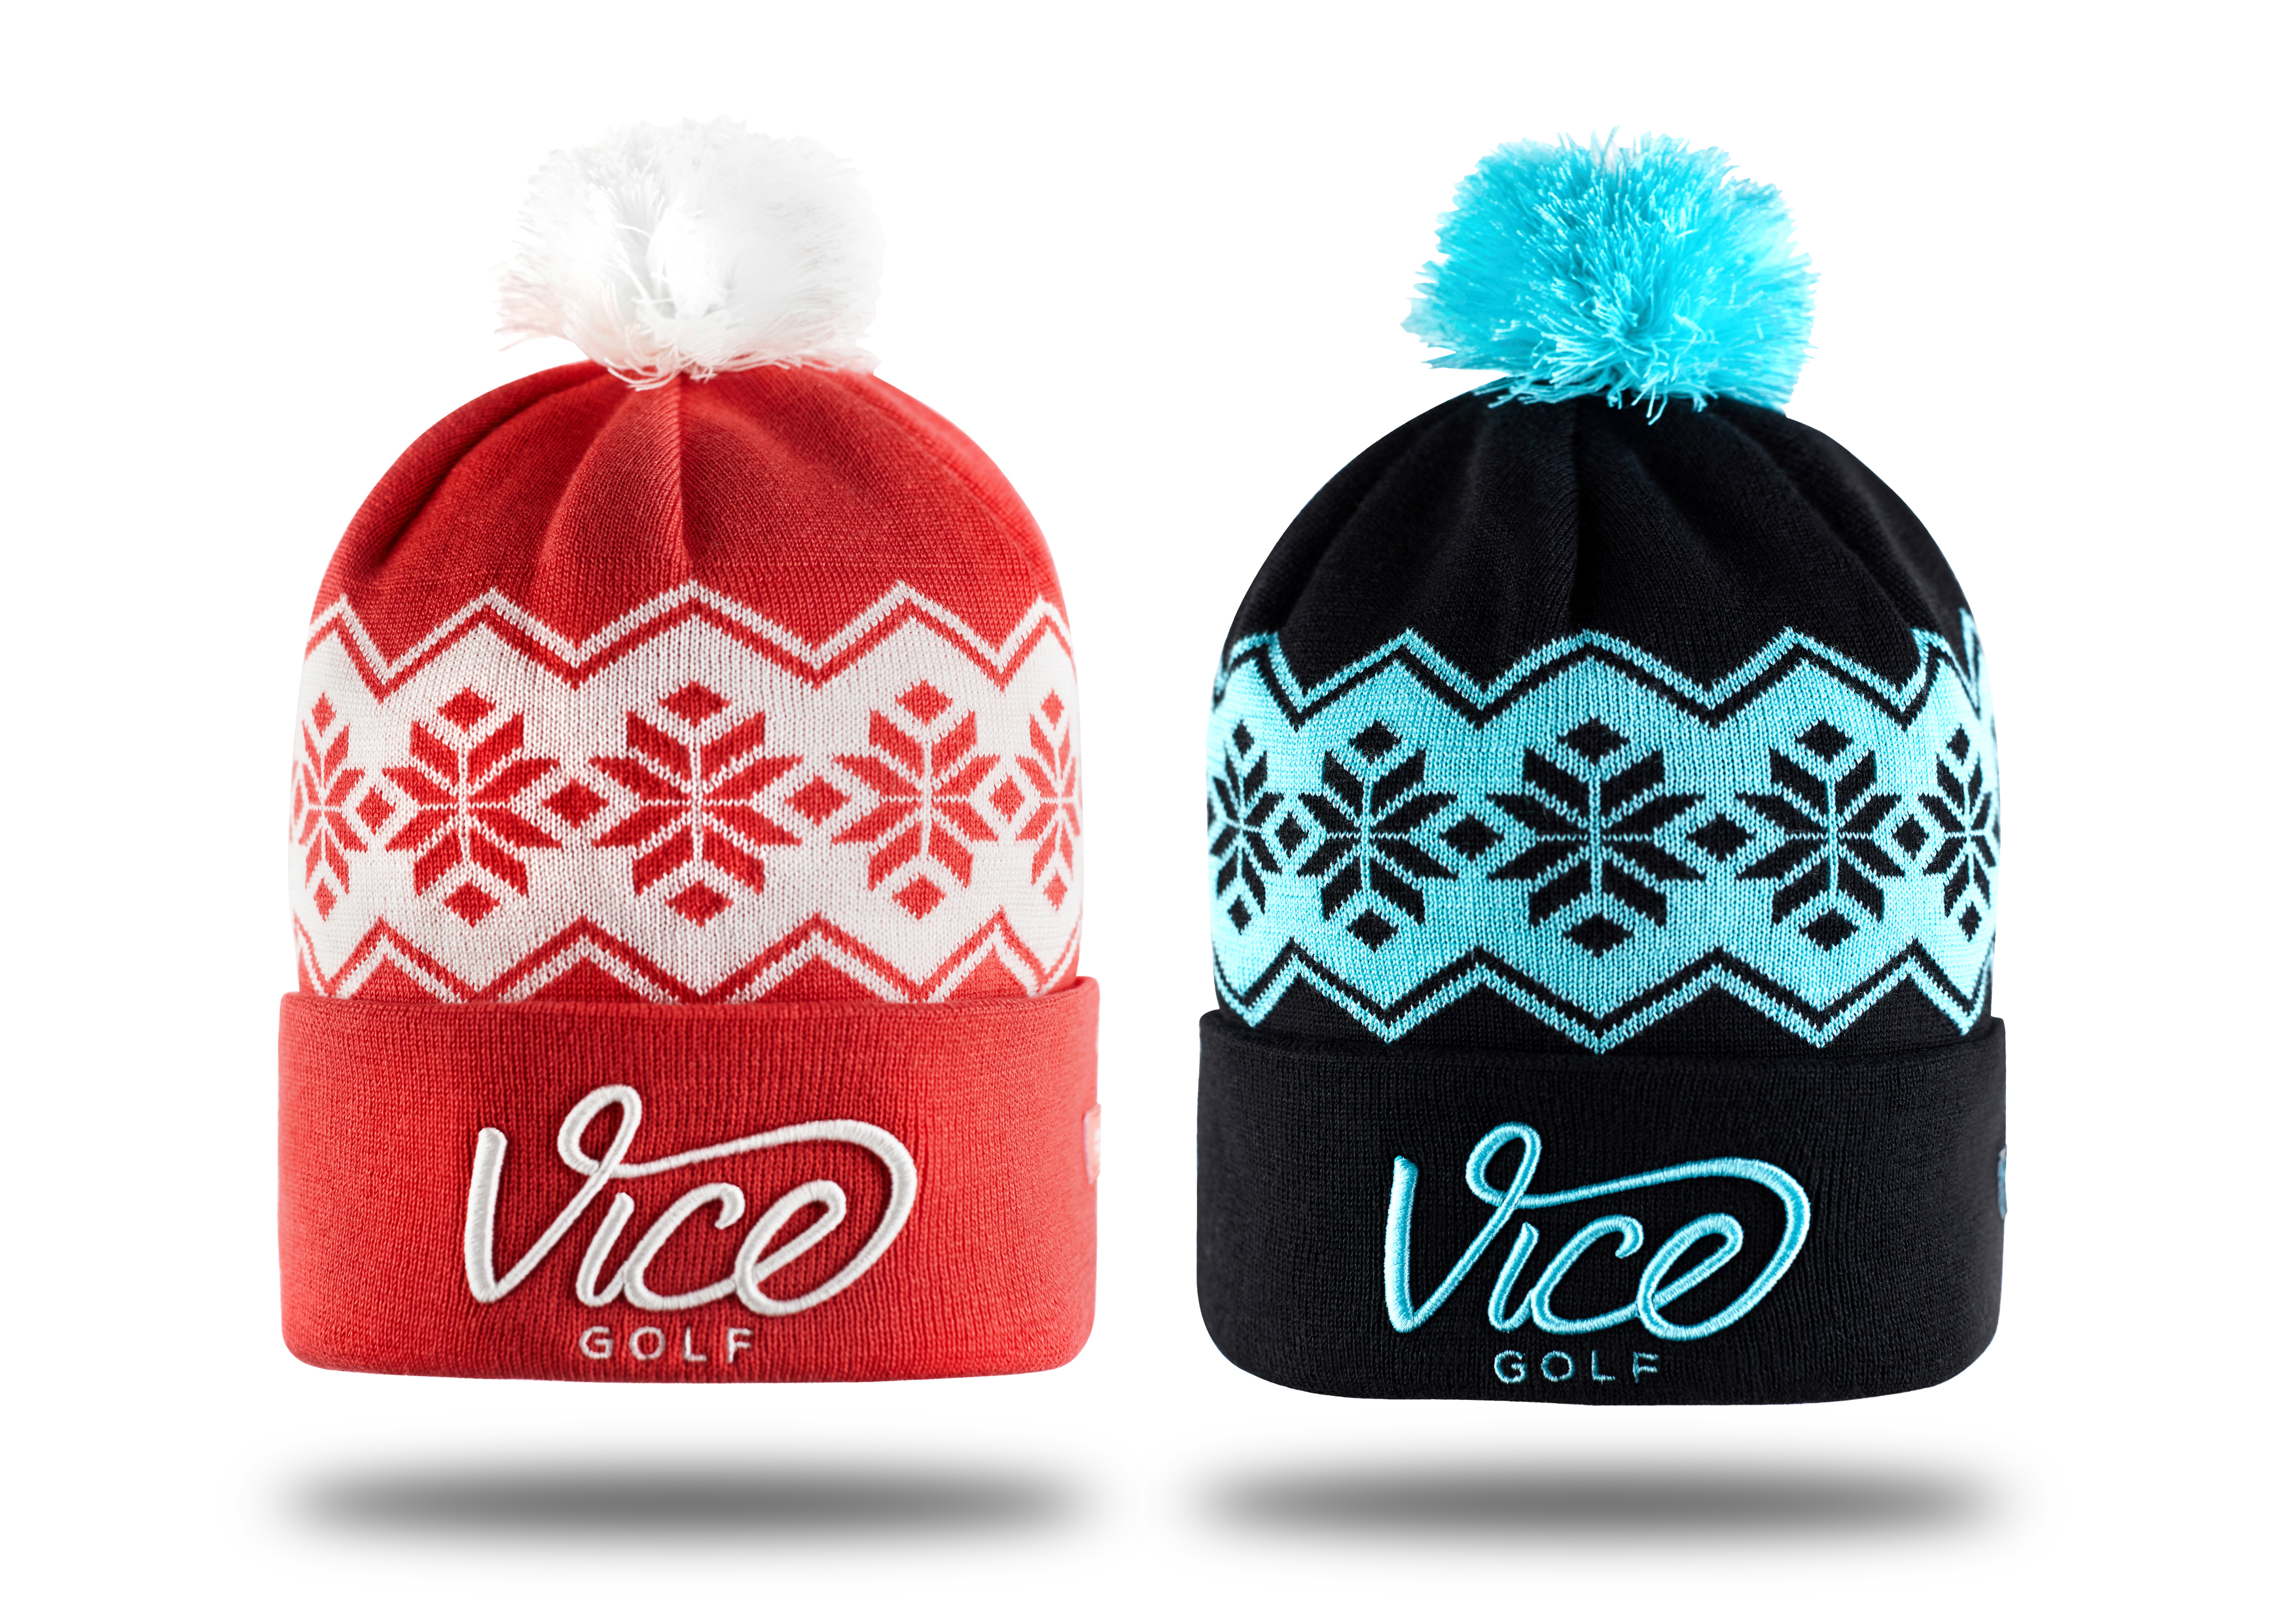 VICE Golf launches awesome Winter Beanies